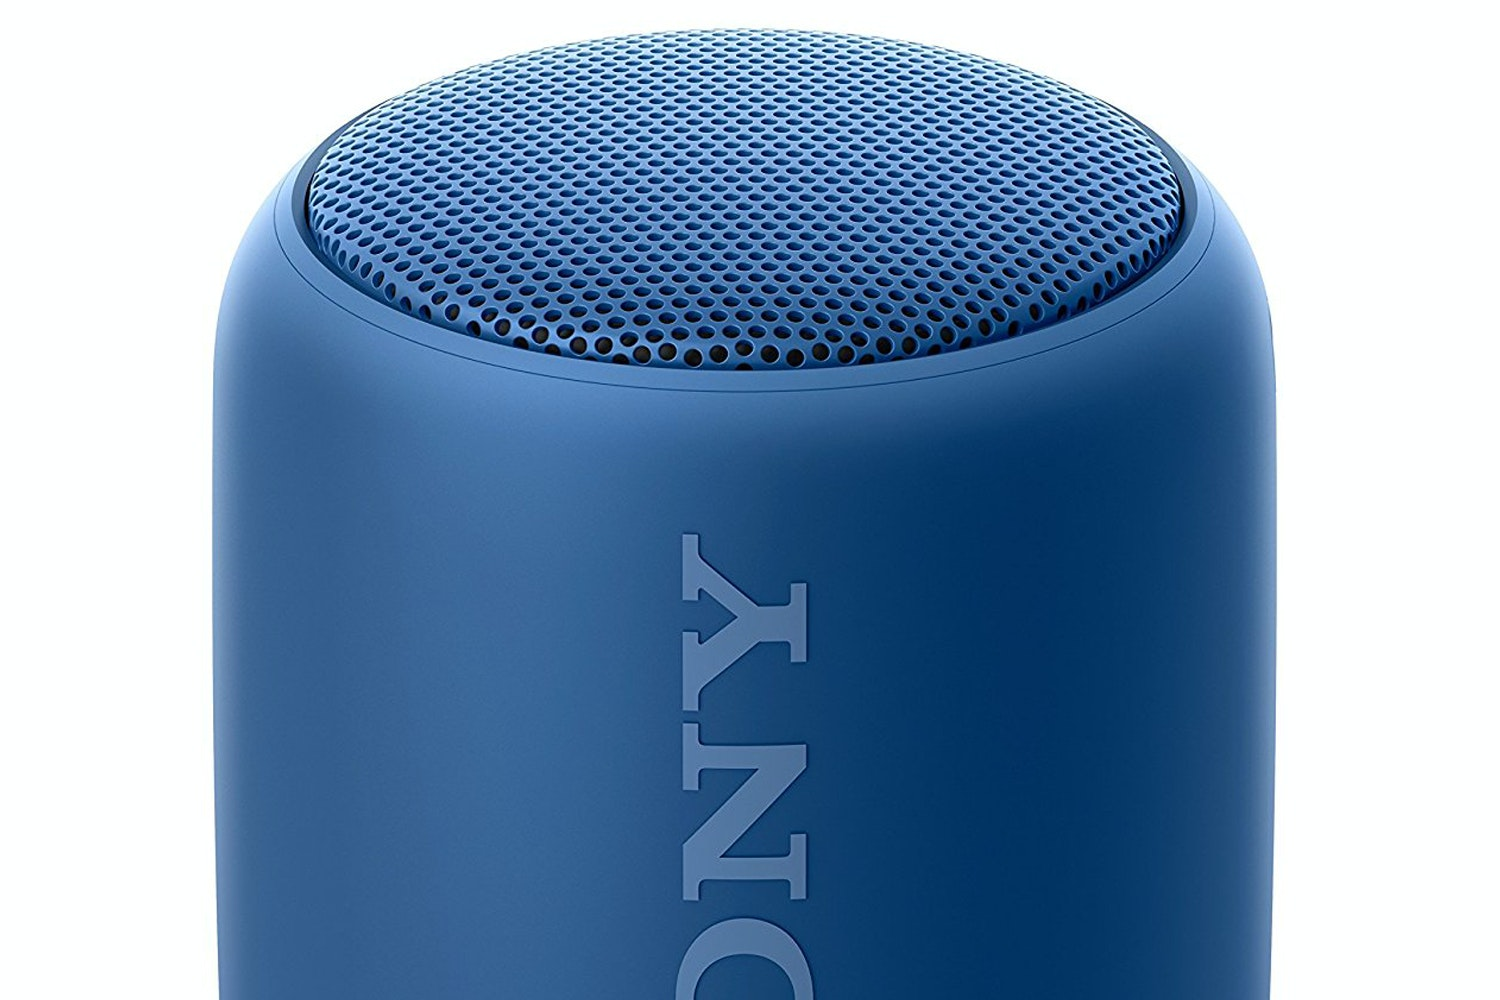 Sony Bluetooth Speaker | SRS-XB10 | Blue